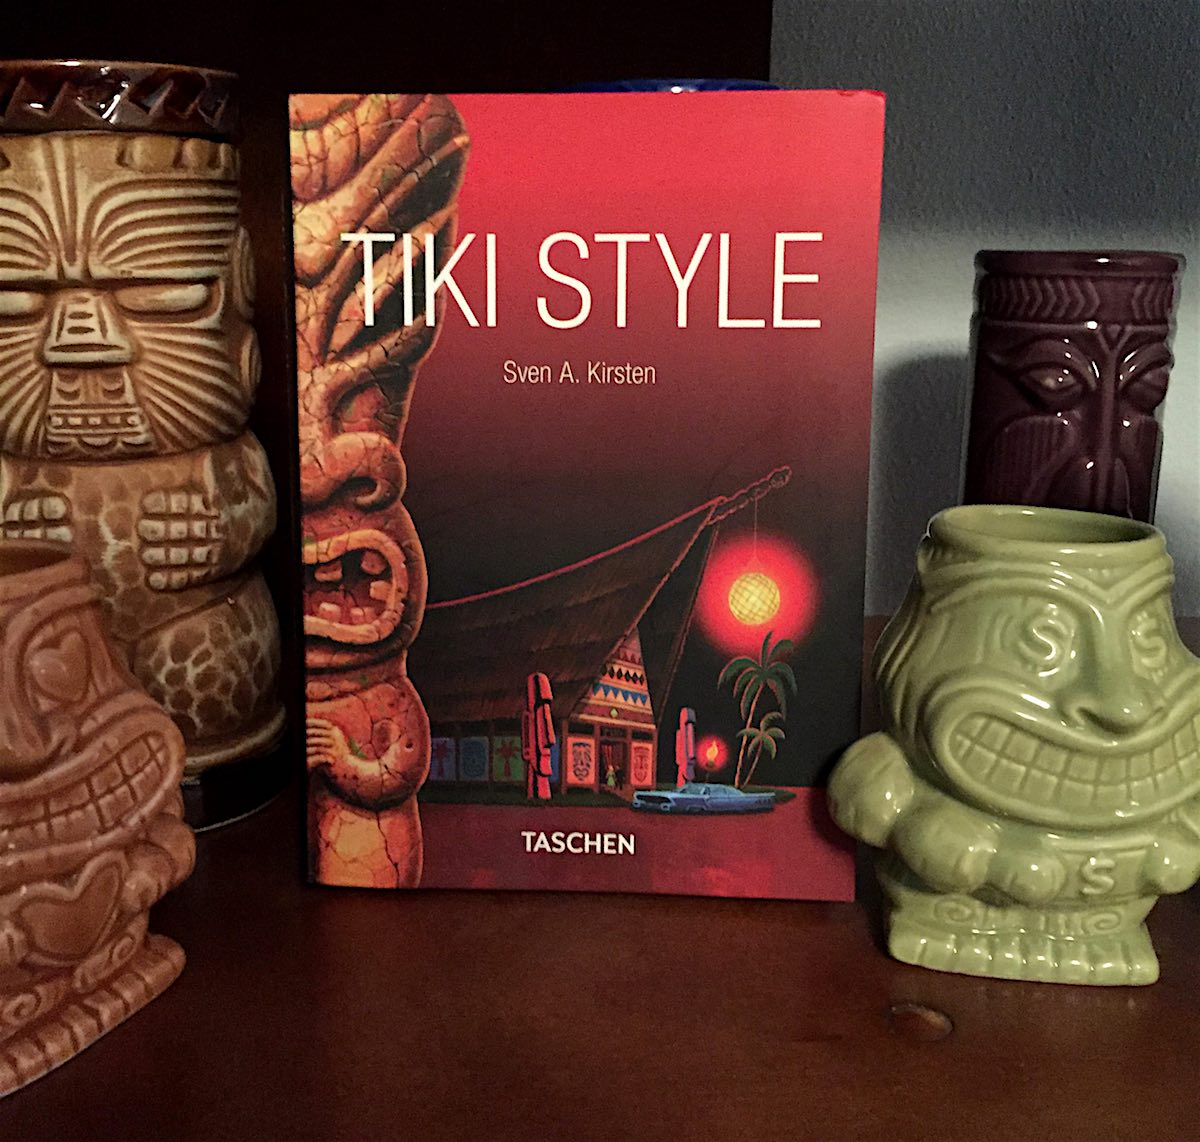 Tiki Style packs a big punch full of everything under the Tikidom roof